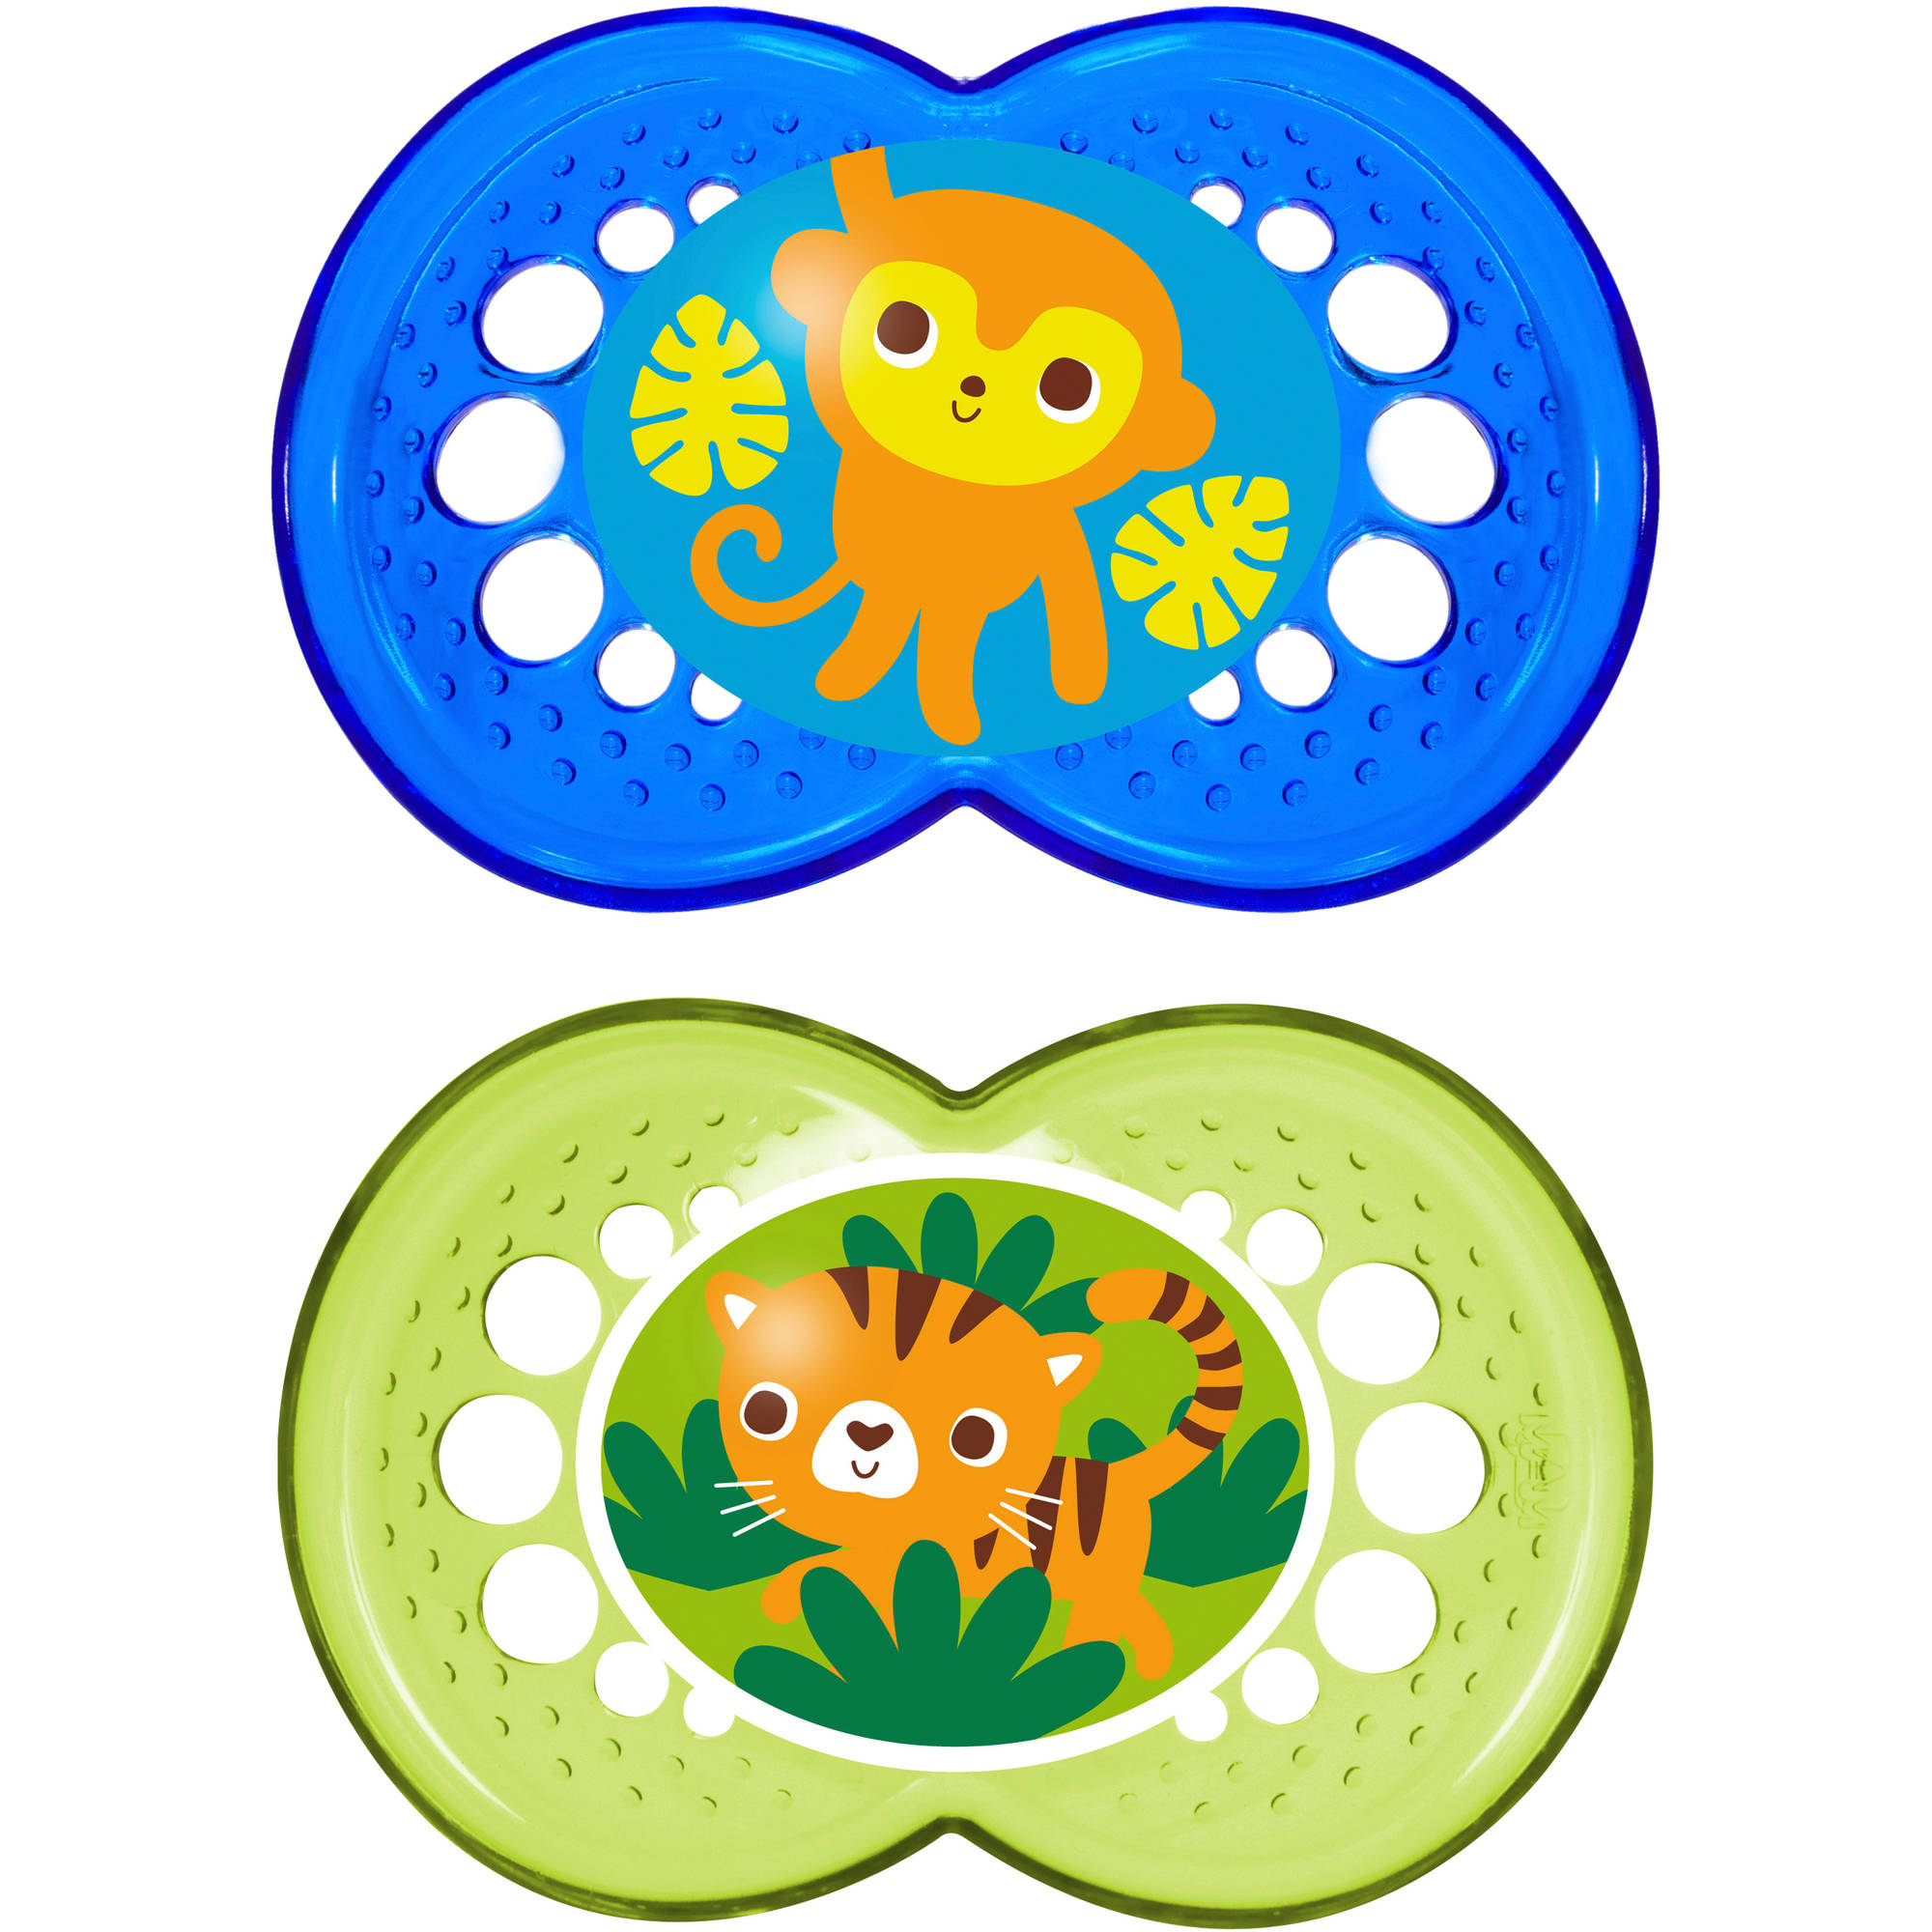 MAM Bright Silicone Pacifier, 2pack